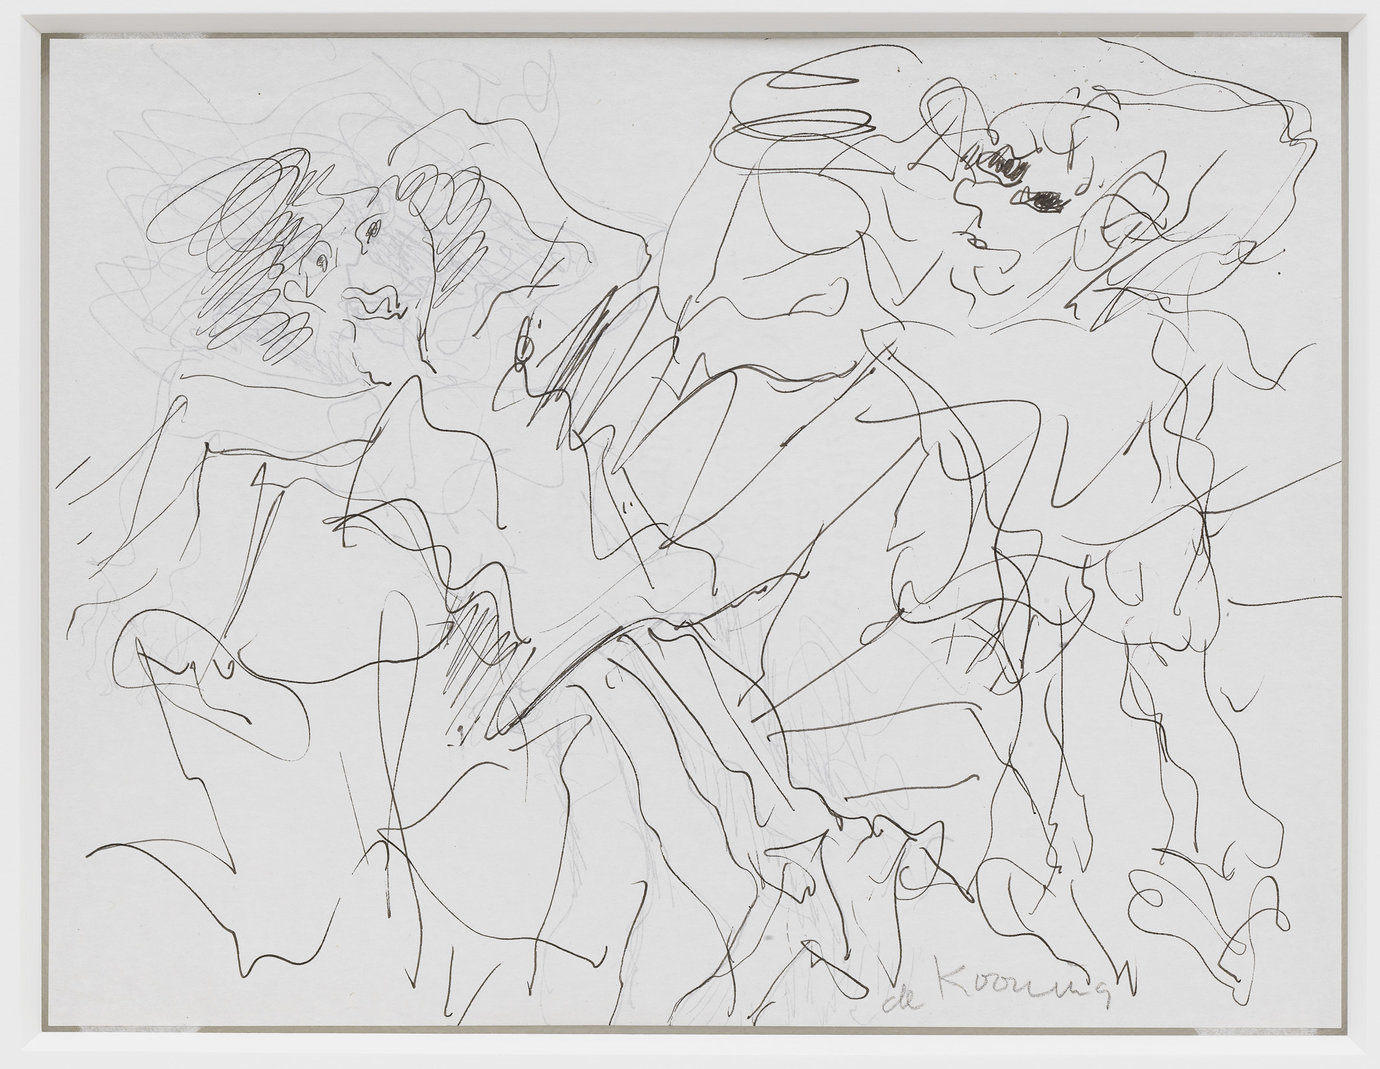 ", c. 1980. Ink on paper, double-sided, 8-1/2"" x 11-1/16"" (21.6 cm x 28.1 cm)."